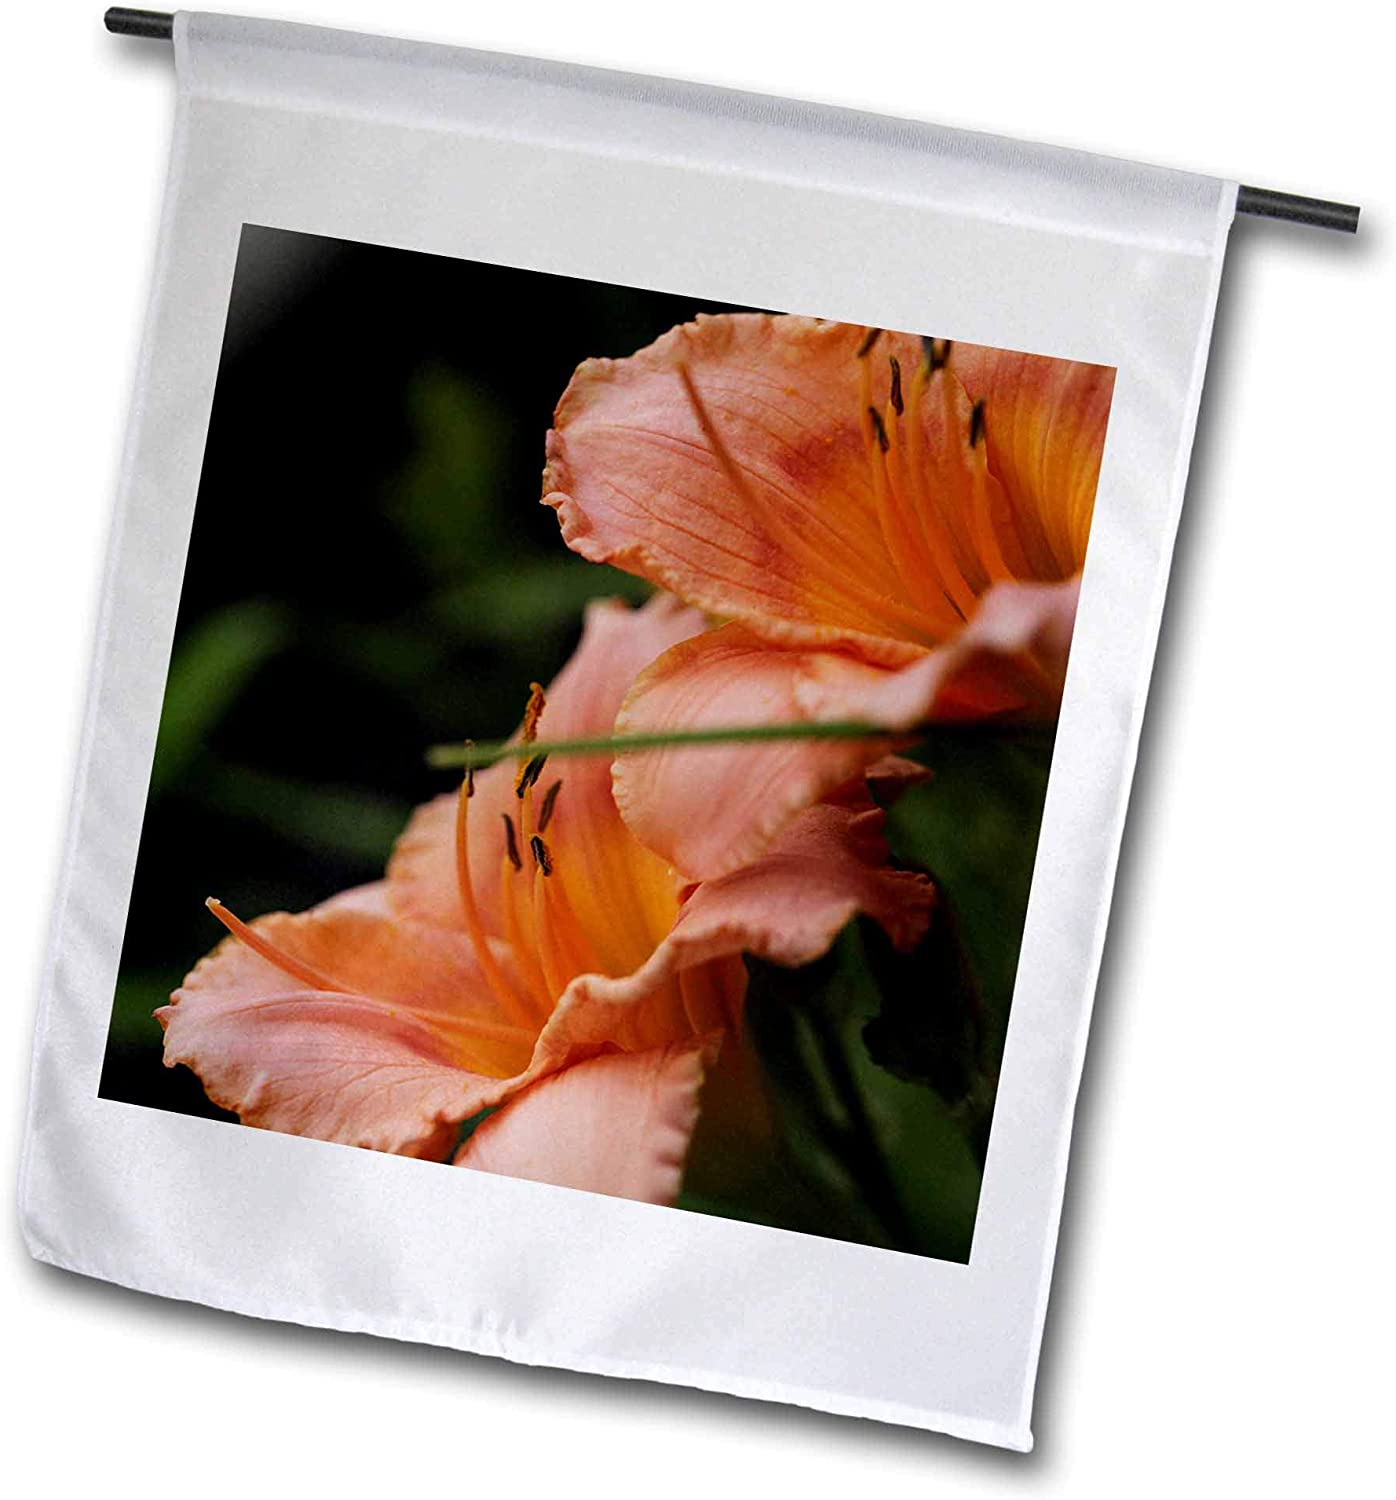 3dRose Stamp City - Flowers - Macro Photograph of a Pair of Orange daylilies in Full Bloom. - 12 x 18 inch Garden Flag (fl_319080_1)